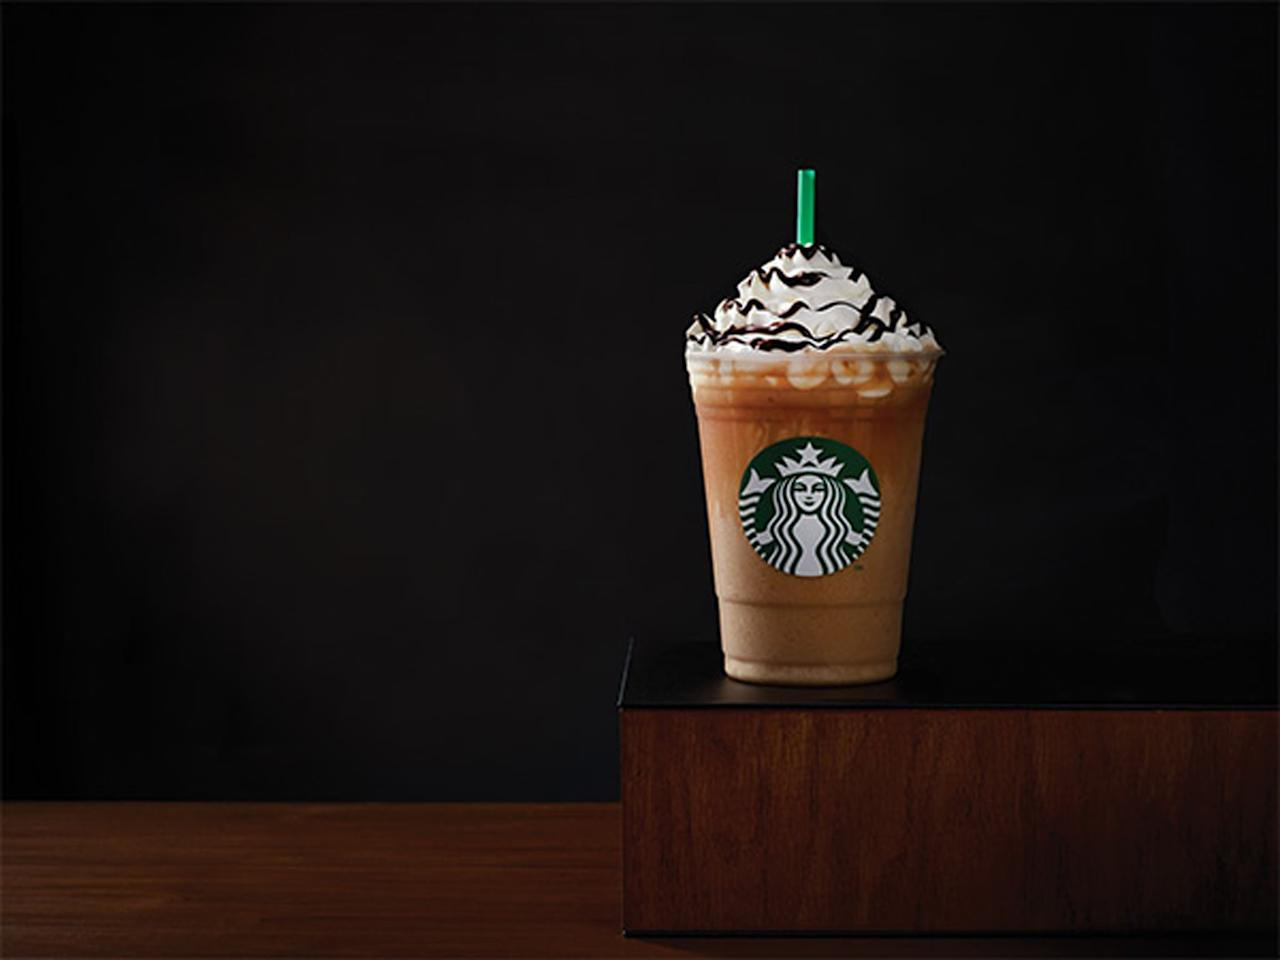 <p><strong>What's in it:</strong> Coffee syrup is blended with milk and ice to form the base, then combined with mocha sauce and Frappuccino chips and topped with whipped cream and mocha syrup.<br> <strong>How much caffeine:</strong> 75 milligrams for a tall.</p>